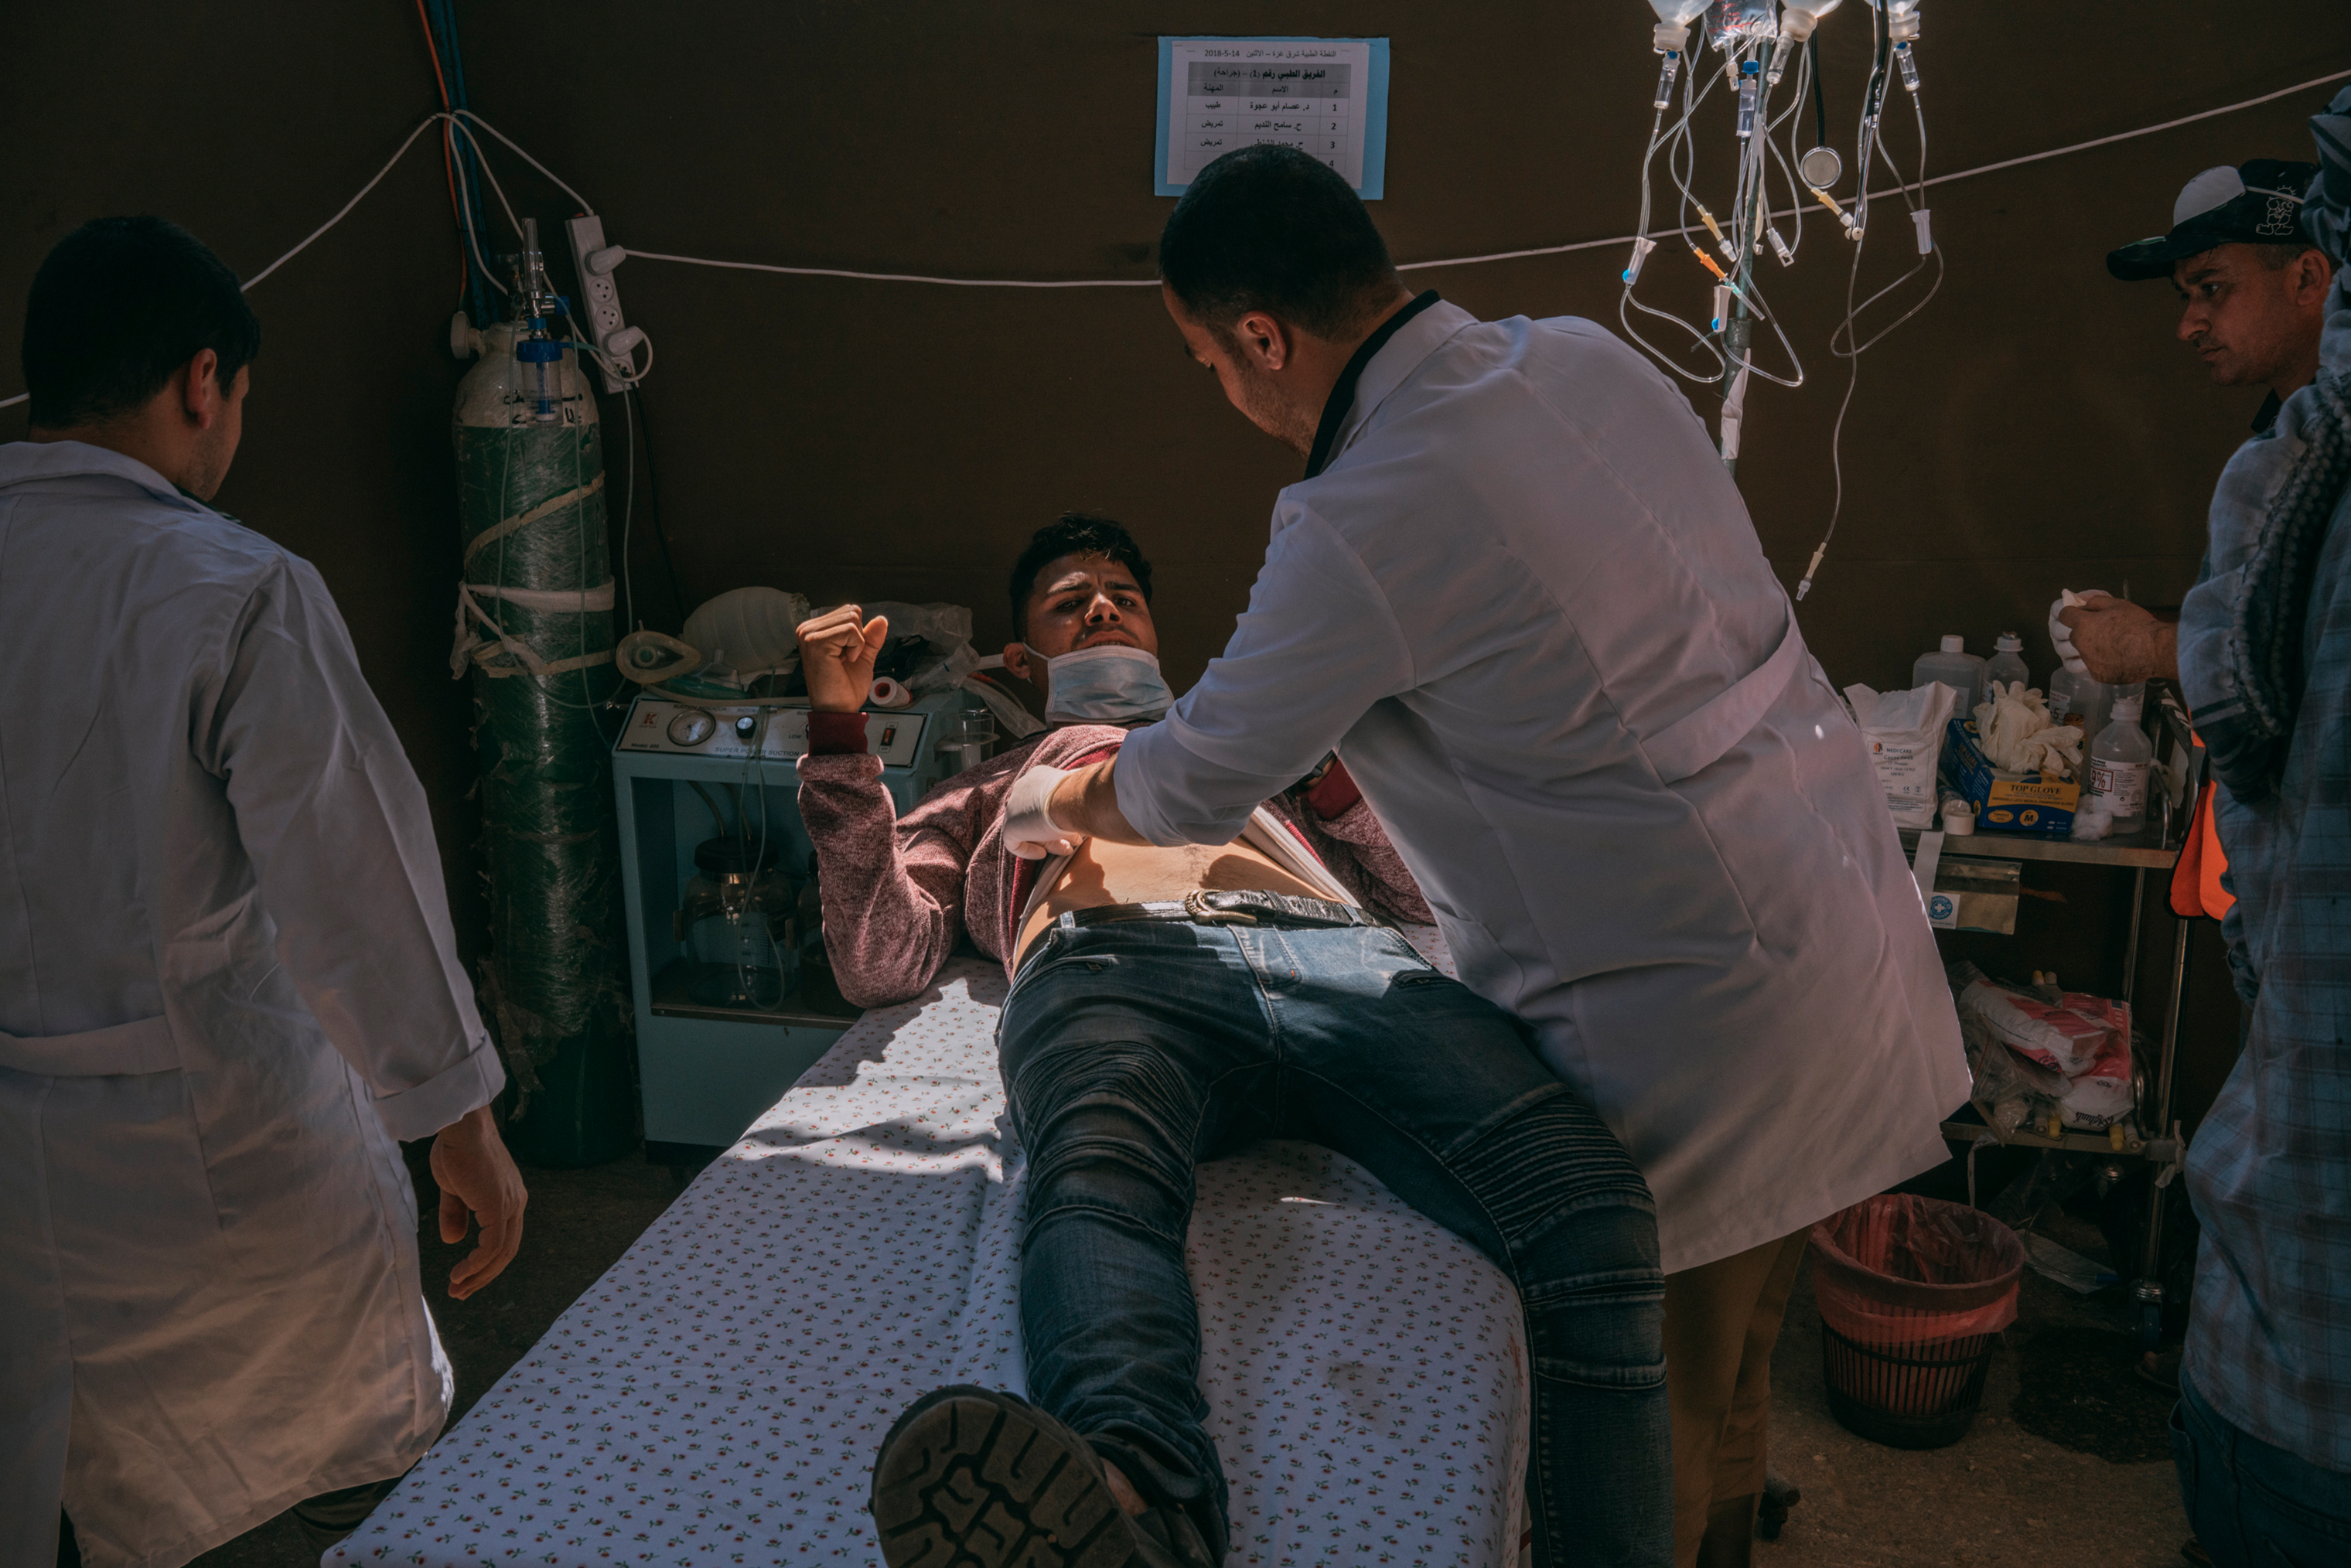 An injured man is assisted by medics in a field hospital set up along the Gaza-Israel border.